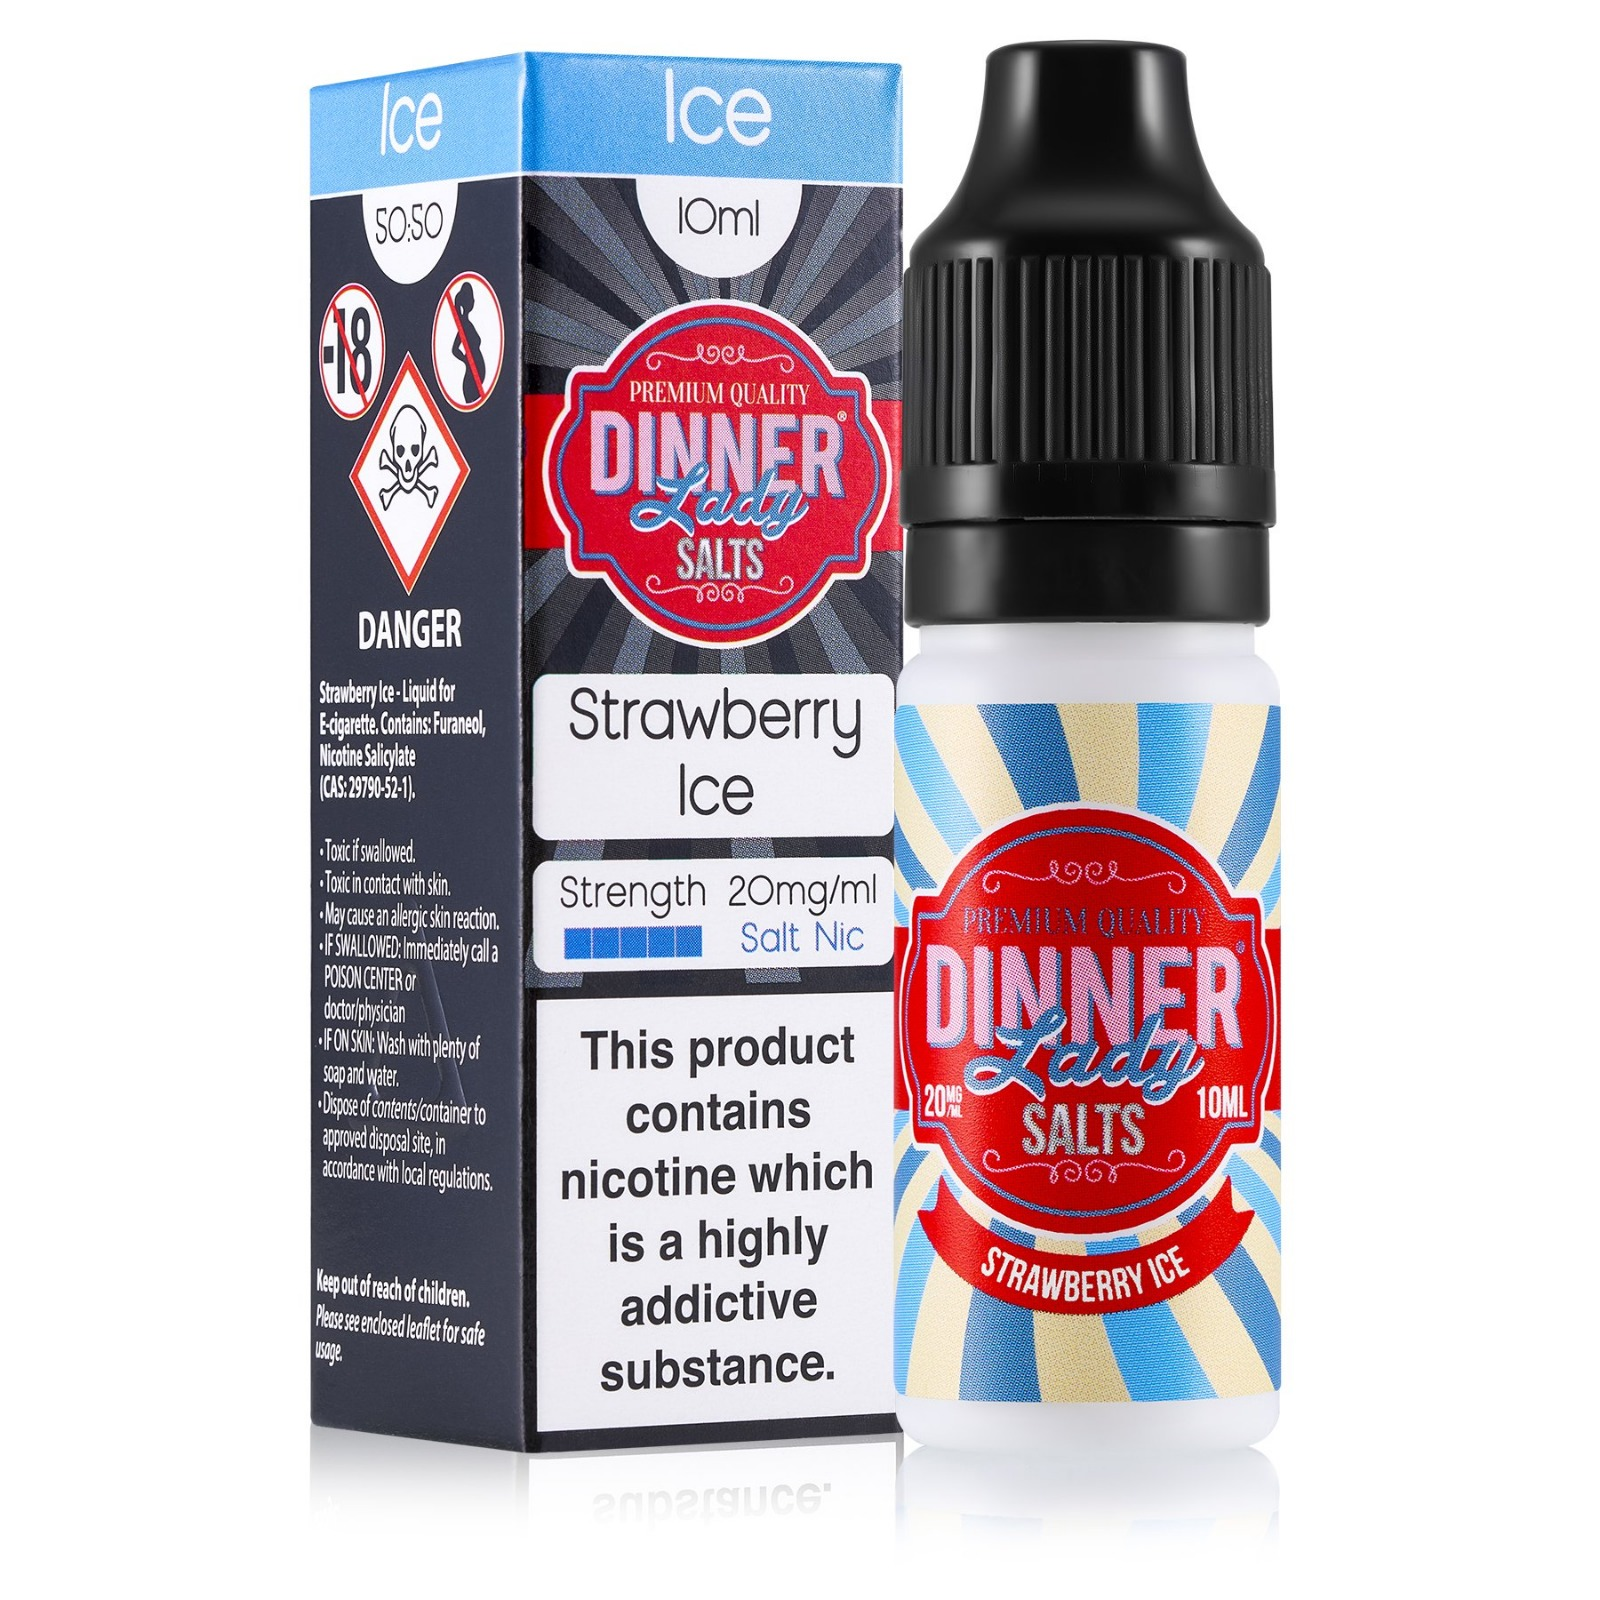 10 ml Dinner Lady Nic. Salts - Strawberry Ice 20 mg/ml